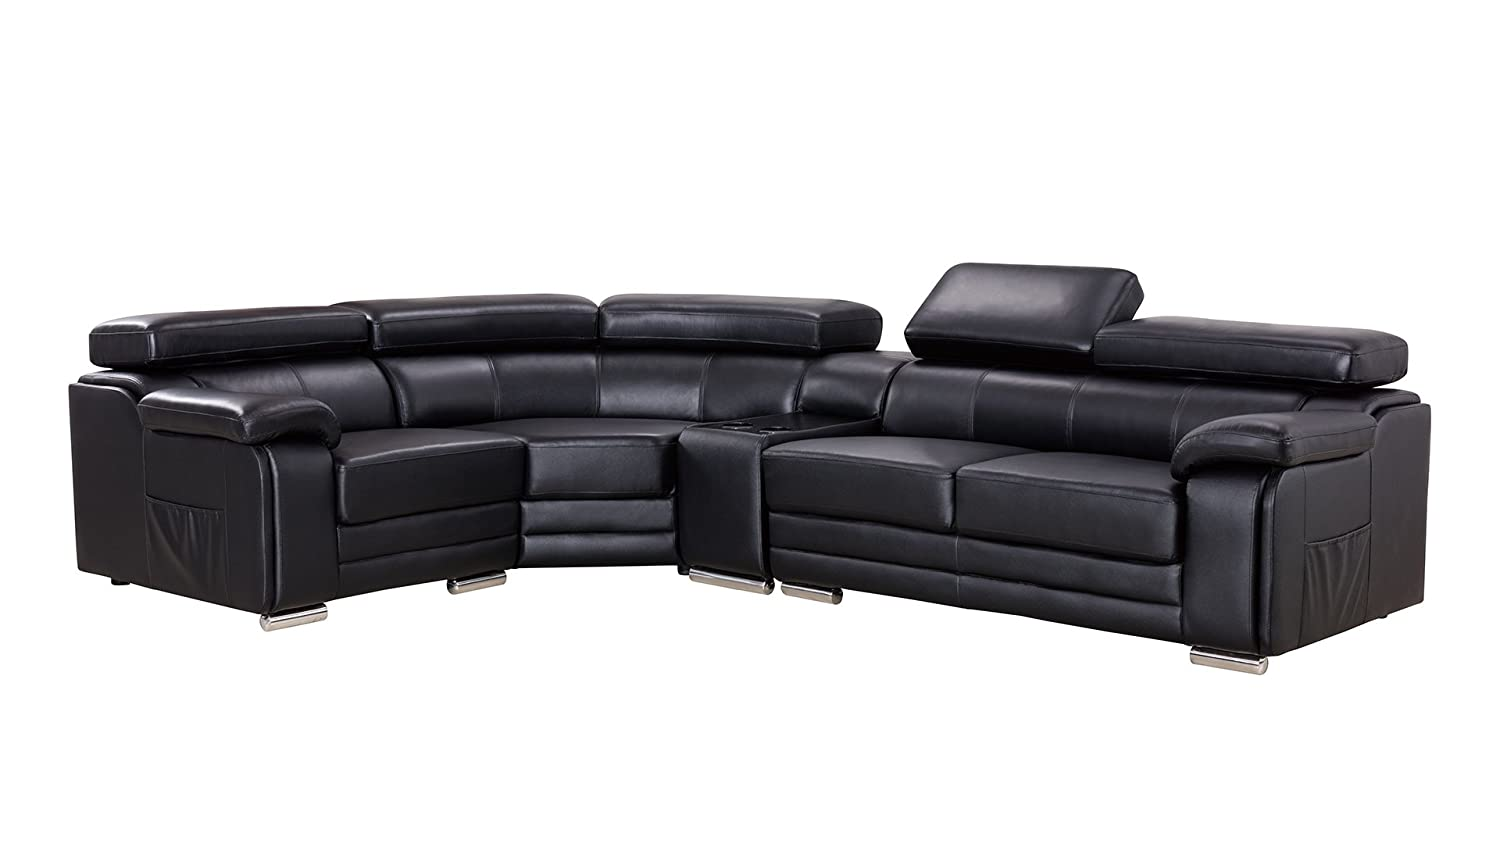 Amazon com american eagle furniture daphne collection modern top grain leather sectional sofa with chaise on left adjustable headrests black kitchen